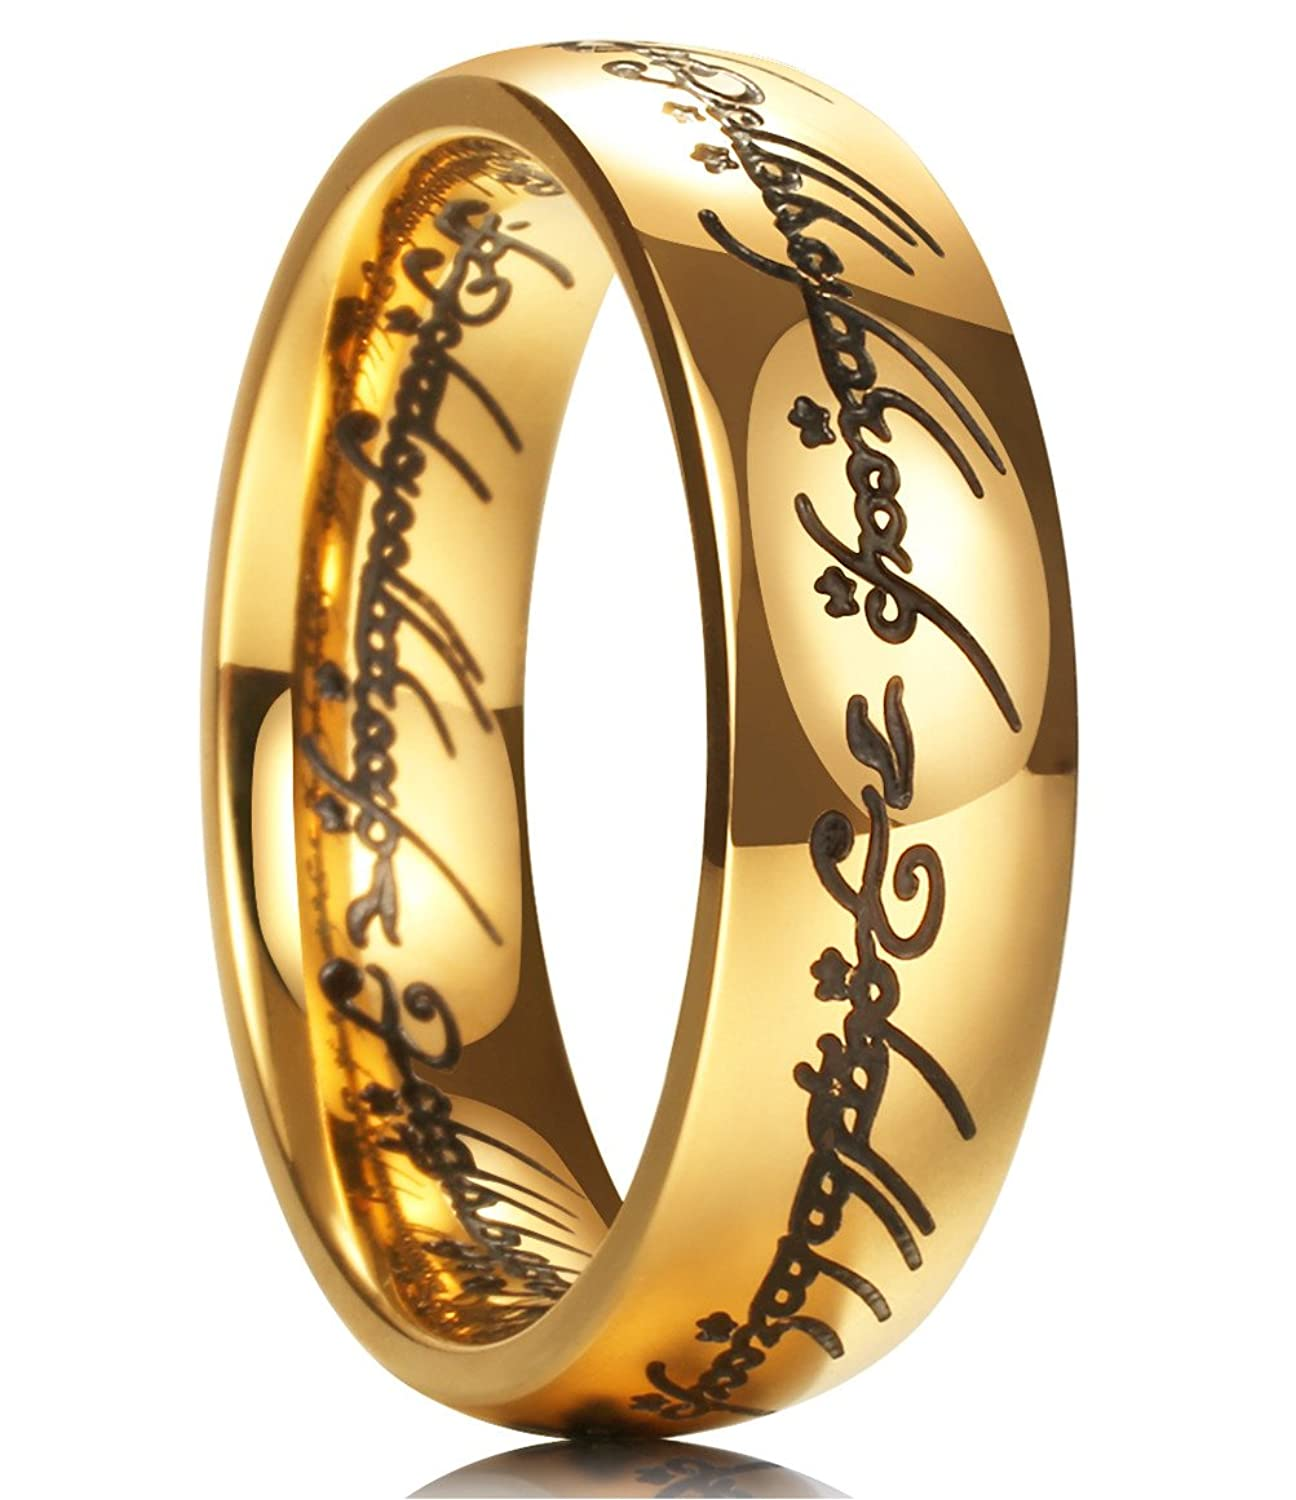 Buy King Will MAGIC 7mm Titanium Ring Gold Plated Lord of Ring Comfort Fit Wedding Band For Men Women and other Wedding Rings at Amazon.com. Our wide selection